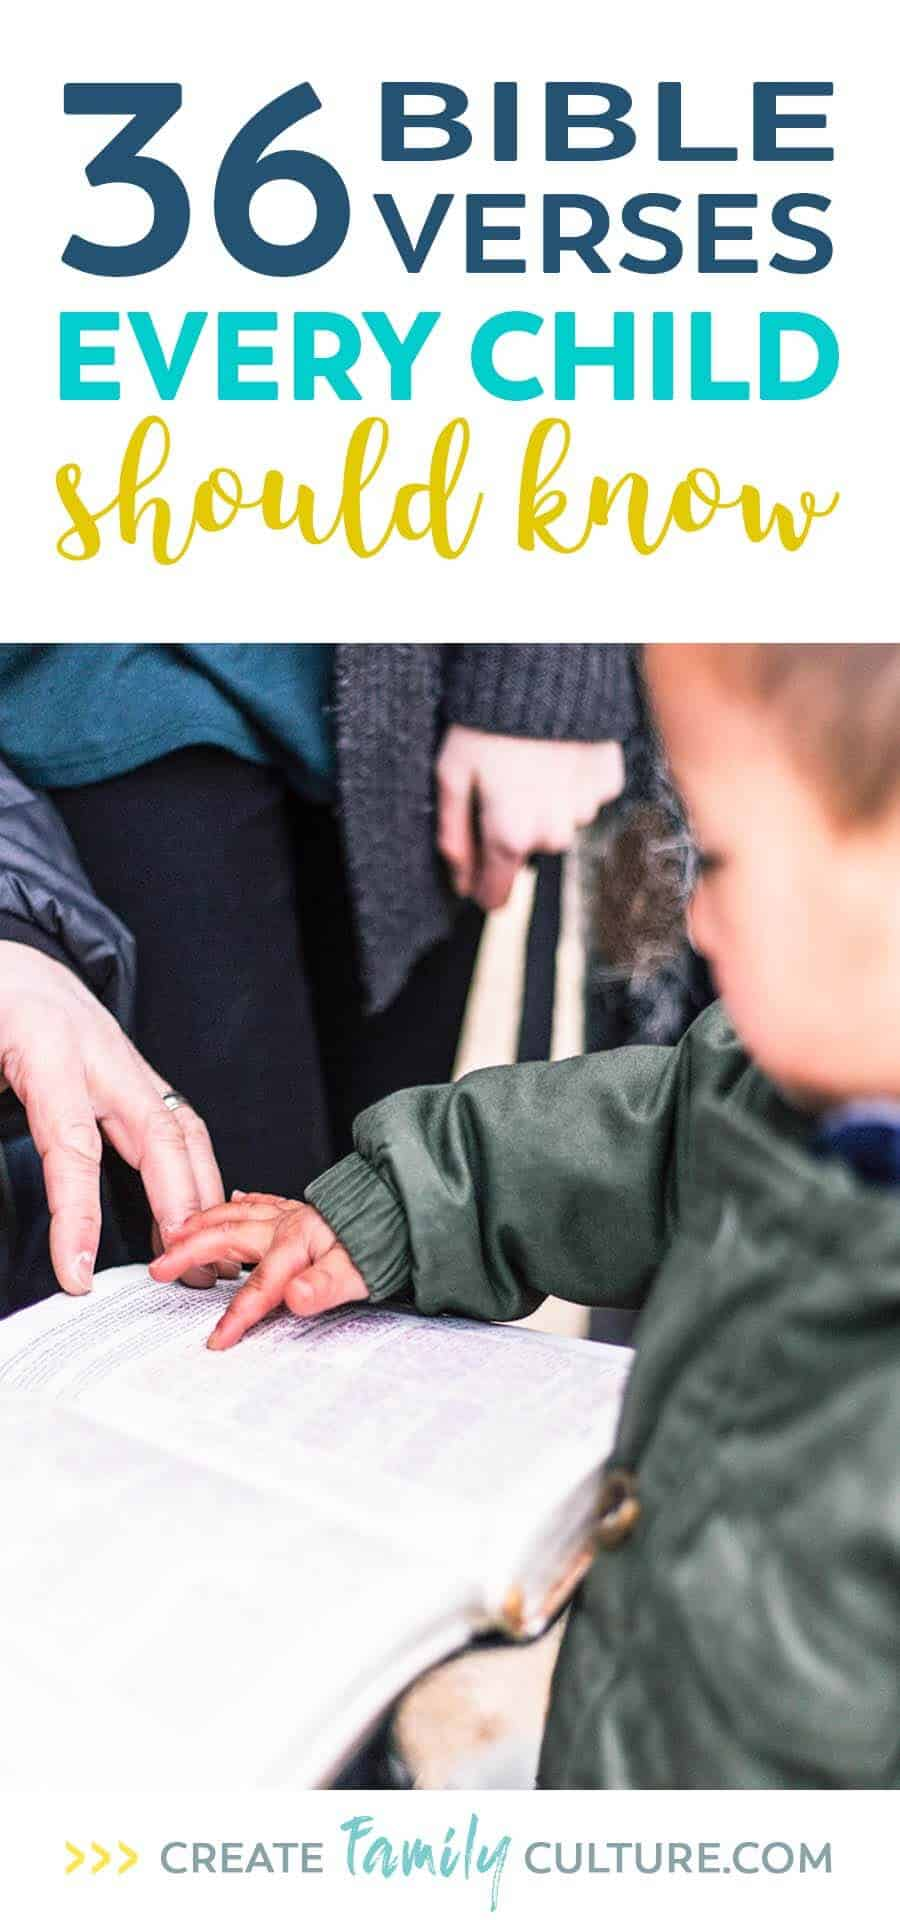 Bible Verses Every Child Should Know   Christian Parenting   Raising Godly Children   Bible Verses for Kids   Faith for Kids